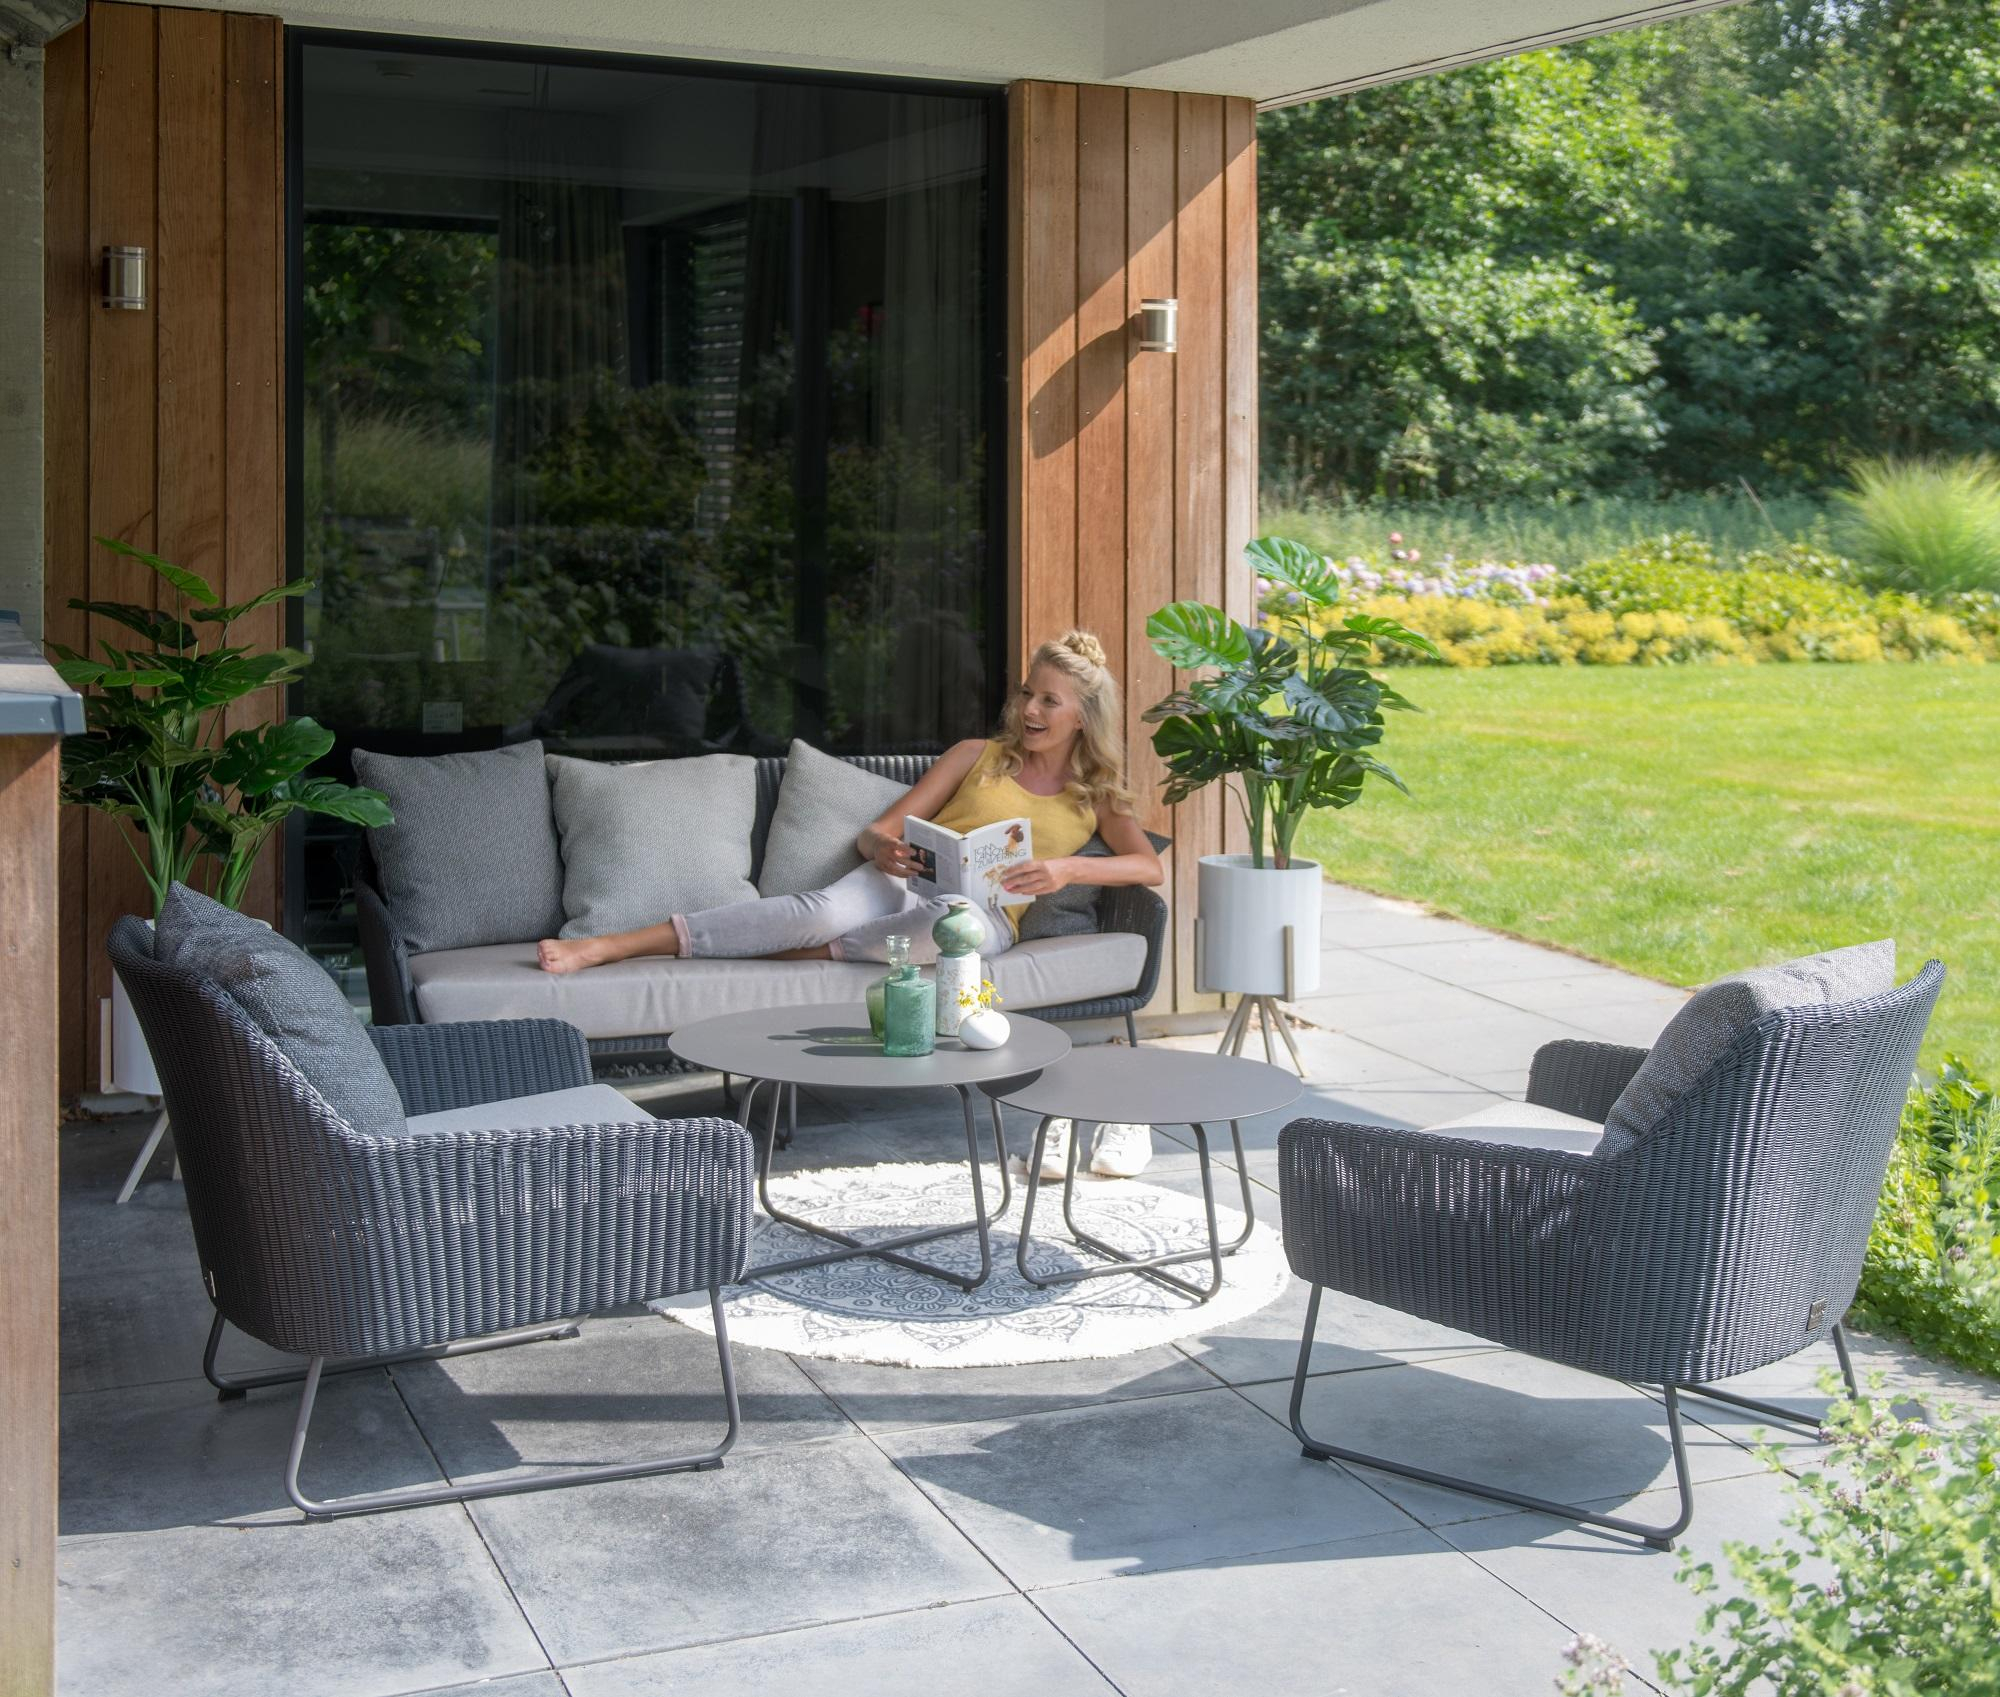 Modern Garden Rattan Sofa & Armchairs Lounge Set With Inside Outdoor Sofas And Chairs (View 13 of 15)